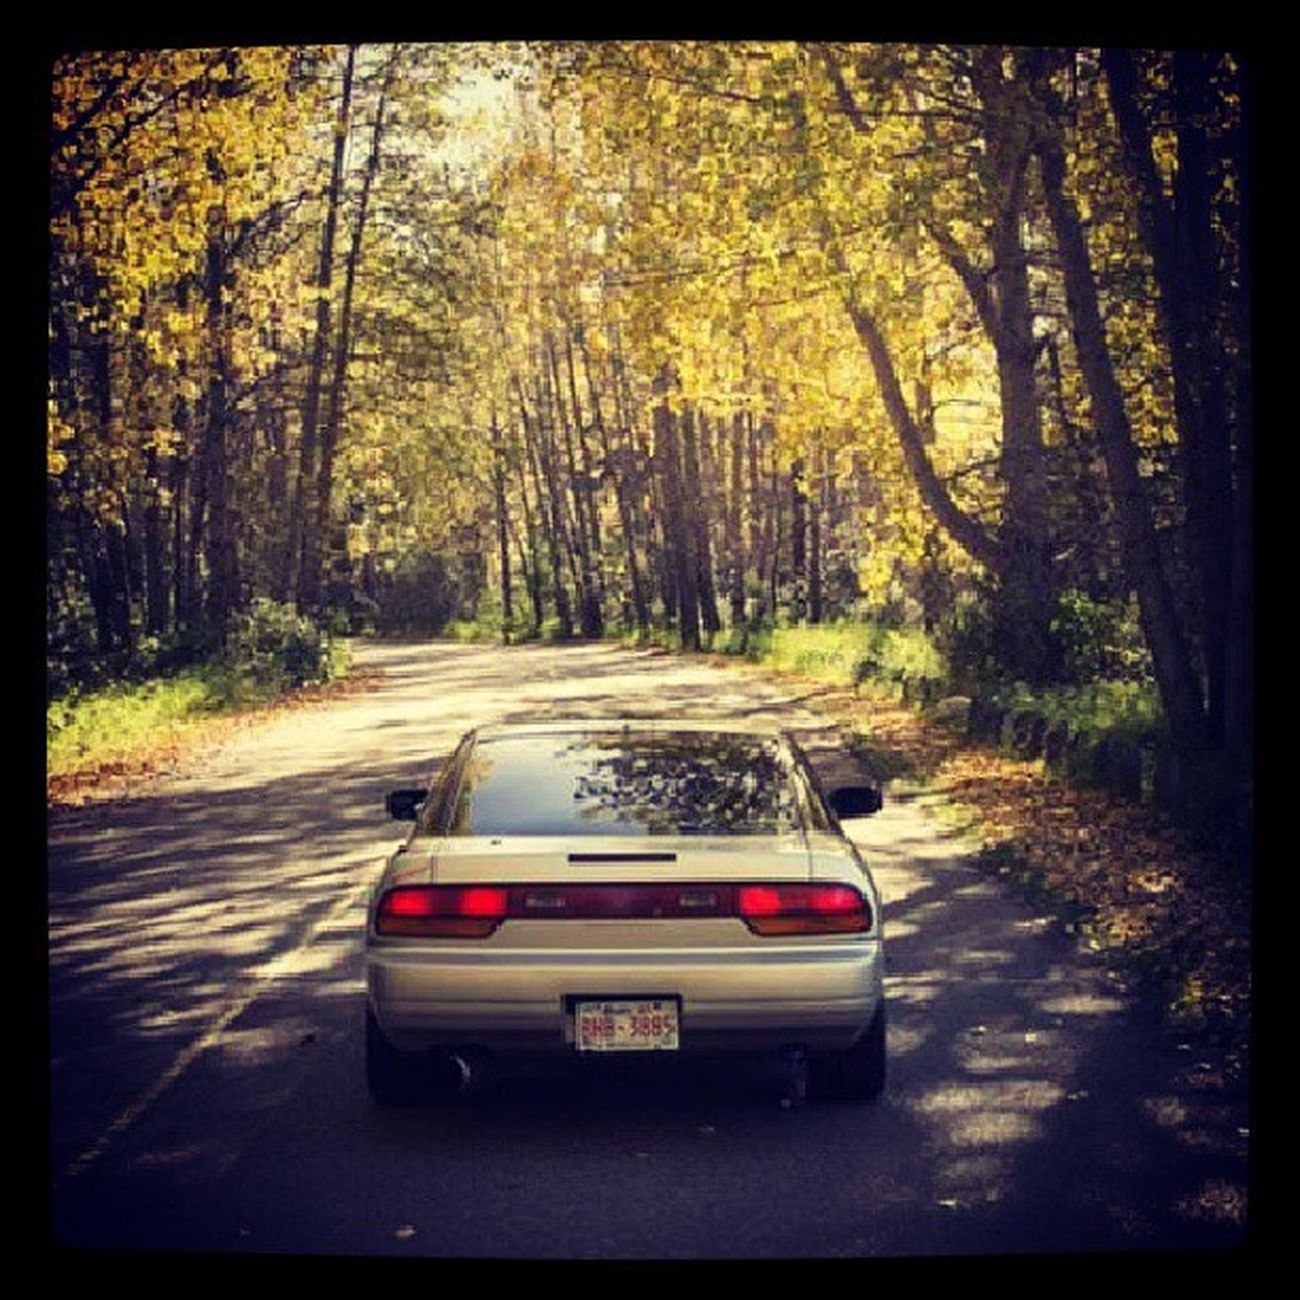 My 180sx out and about I really like this photo I took Nissan 180sx Jdm Turbo clean fall gold domo